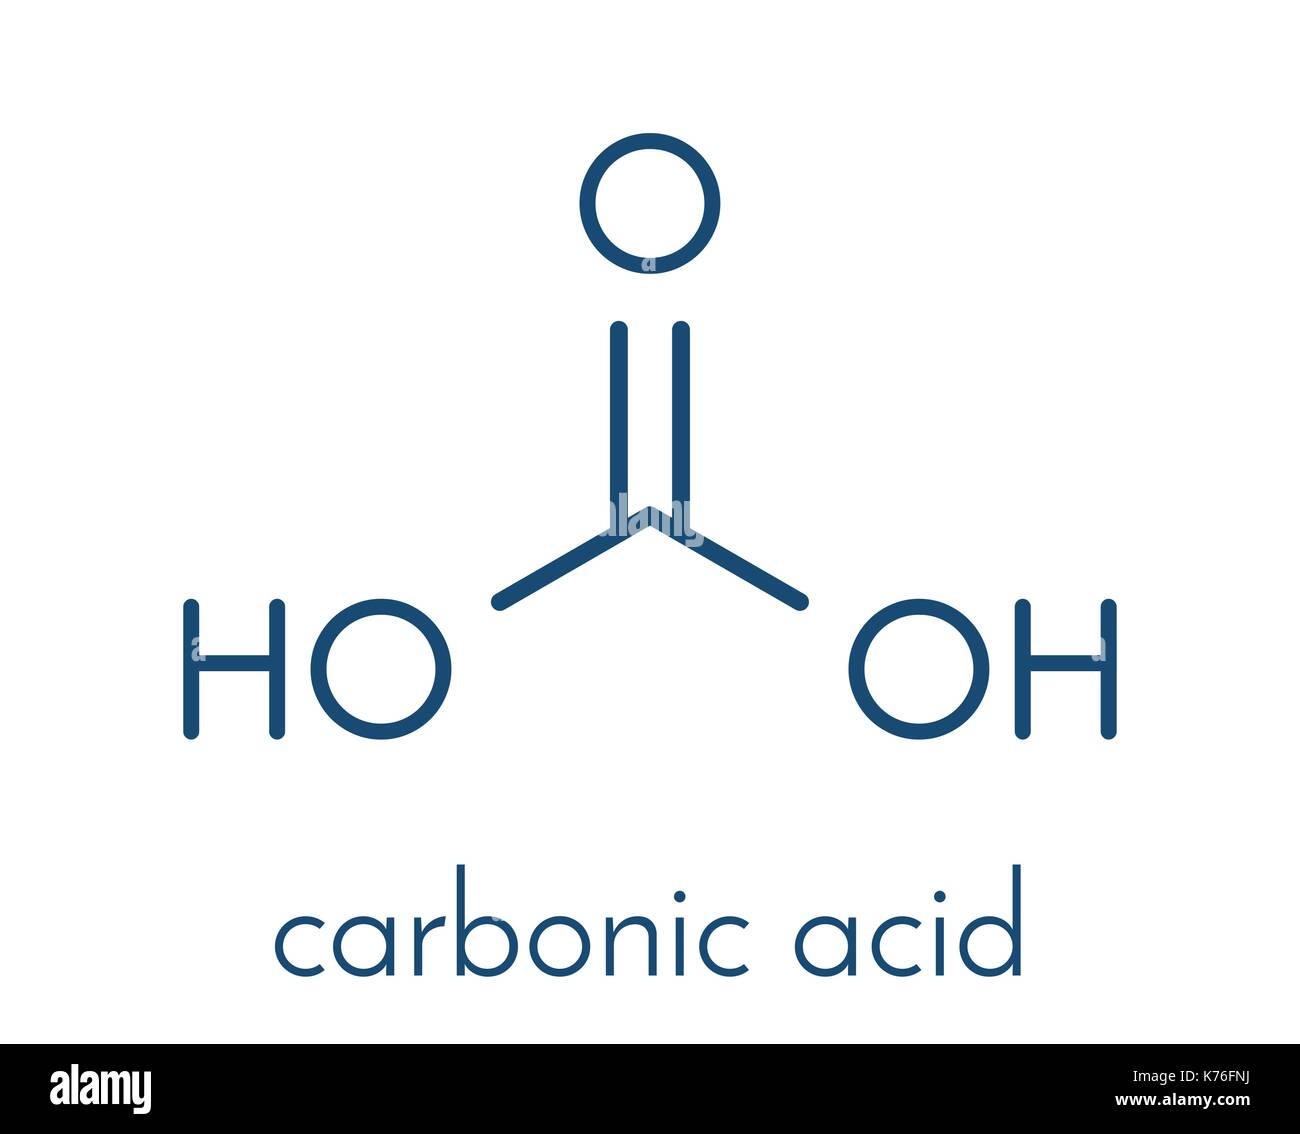 Carbon dioxide molecule stock photos carbon dioxide molecule formed when carbon dioxide is dissolved in water carbonated water pooptronica Images